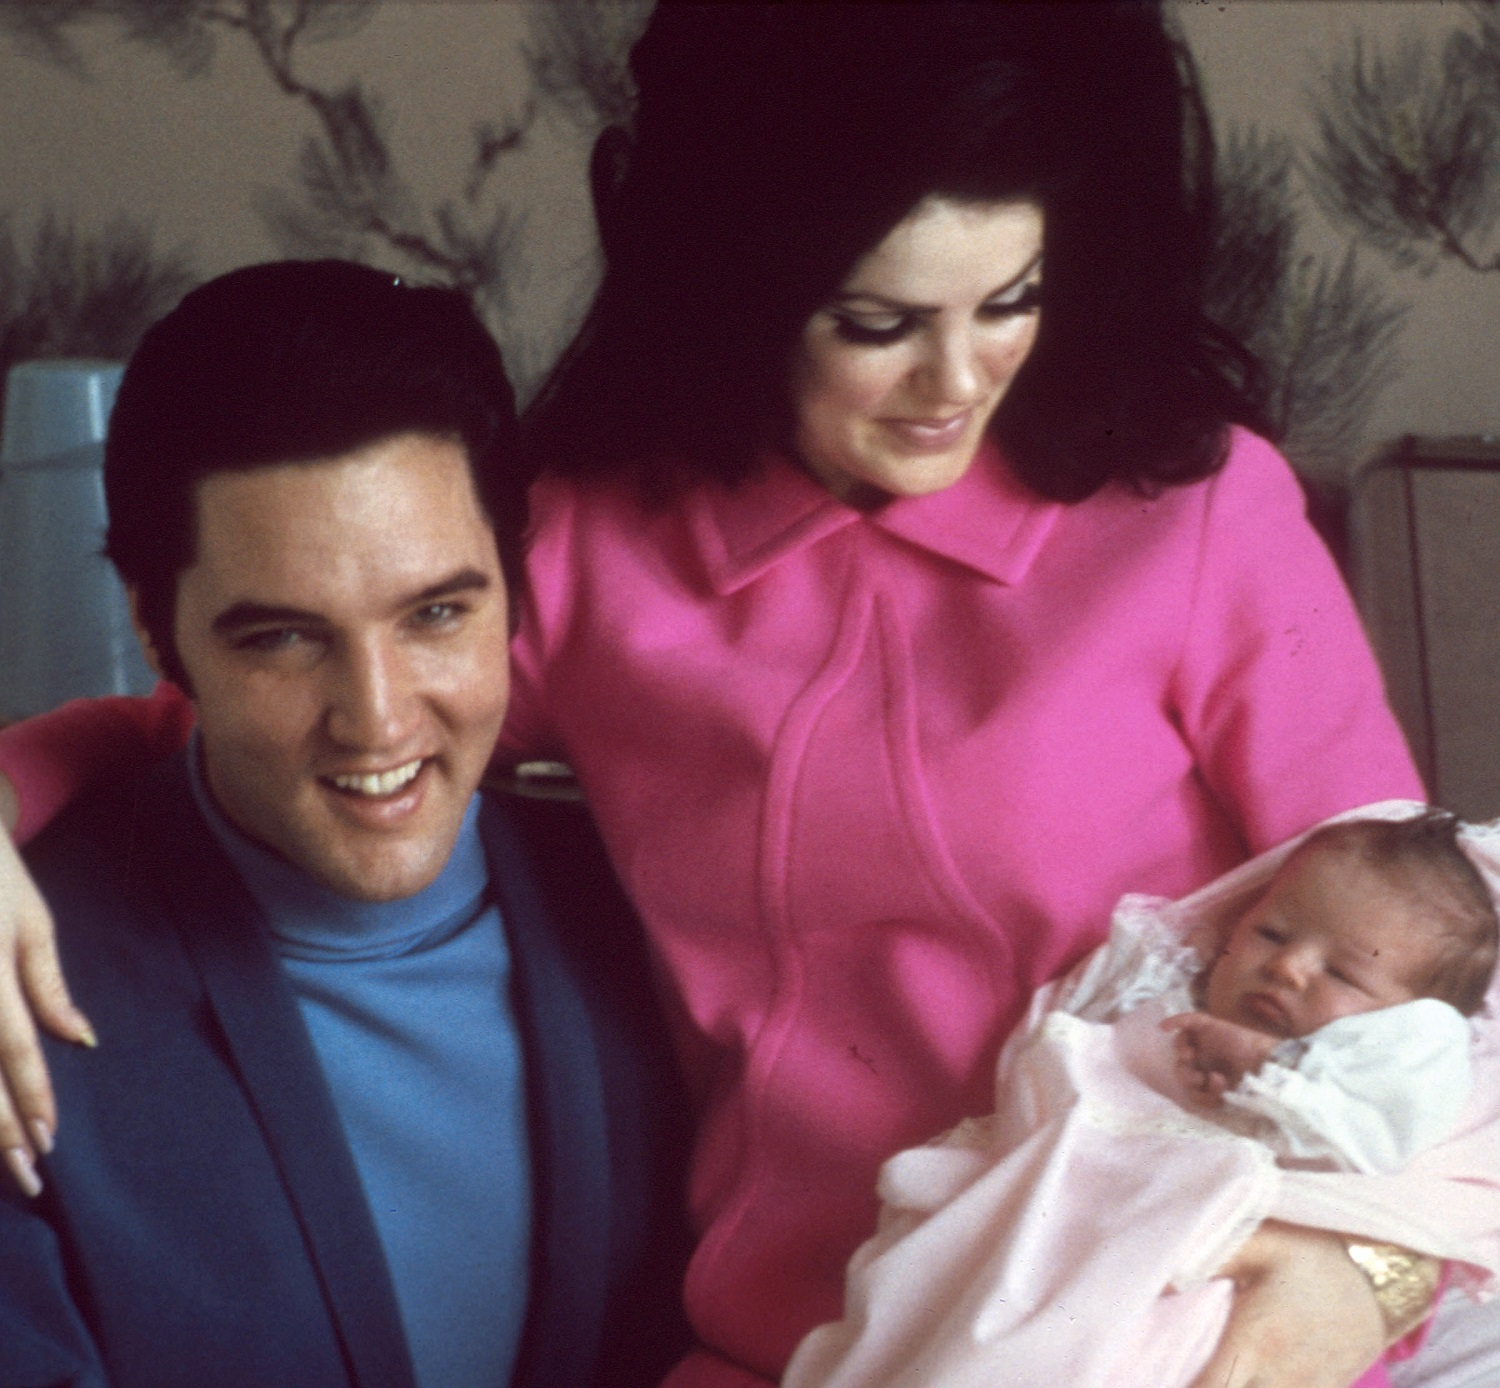 Elvis Presley with his wife Priscilla Presley and their 4 day old daughter Lisa Marie Presley